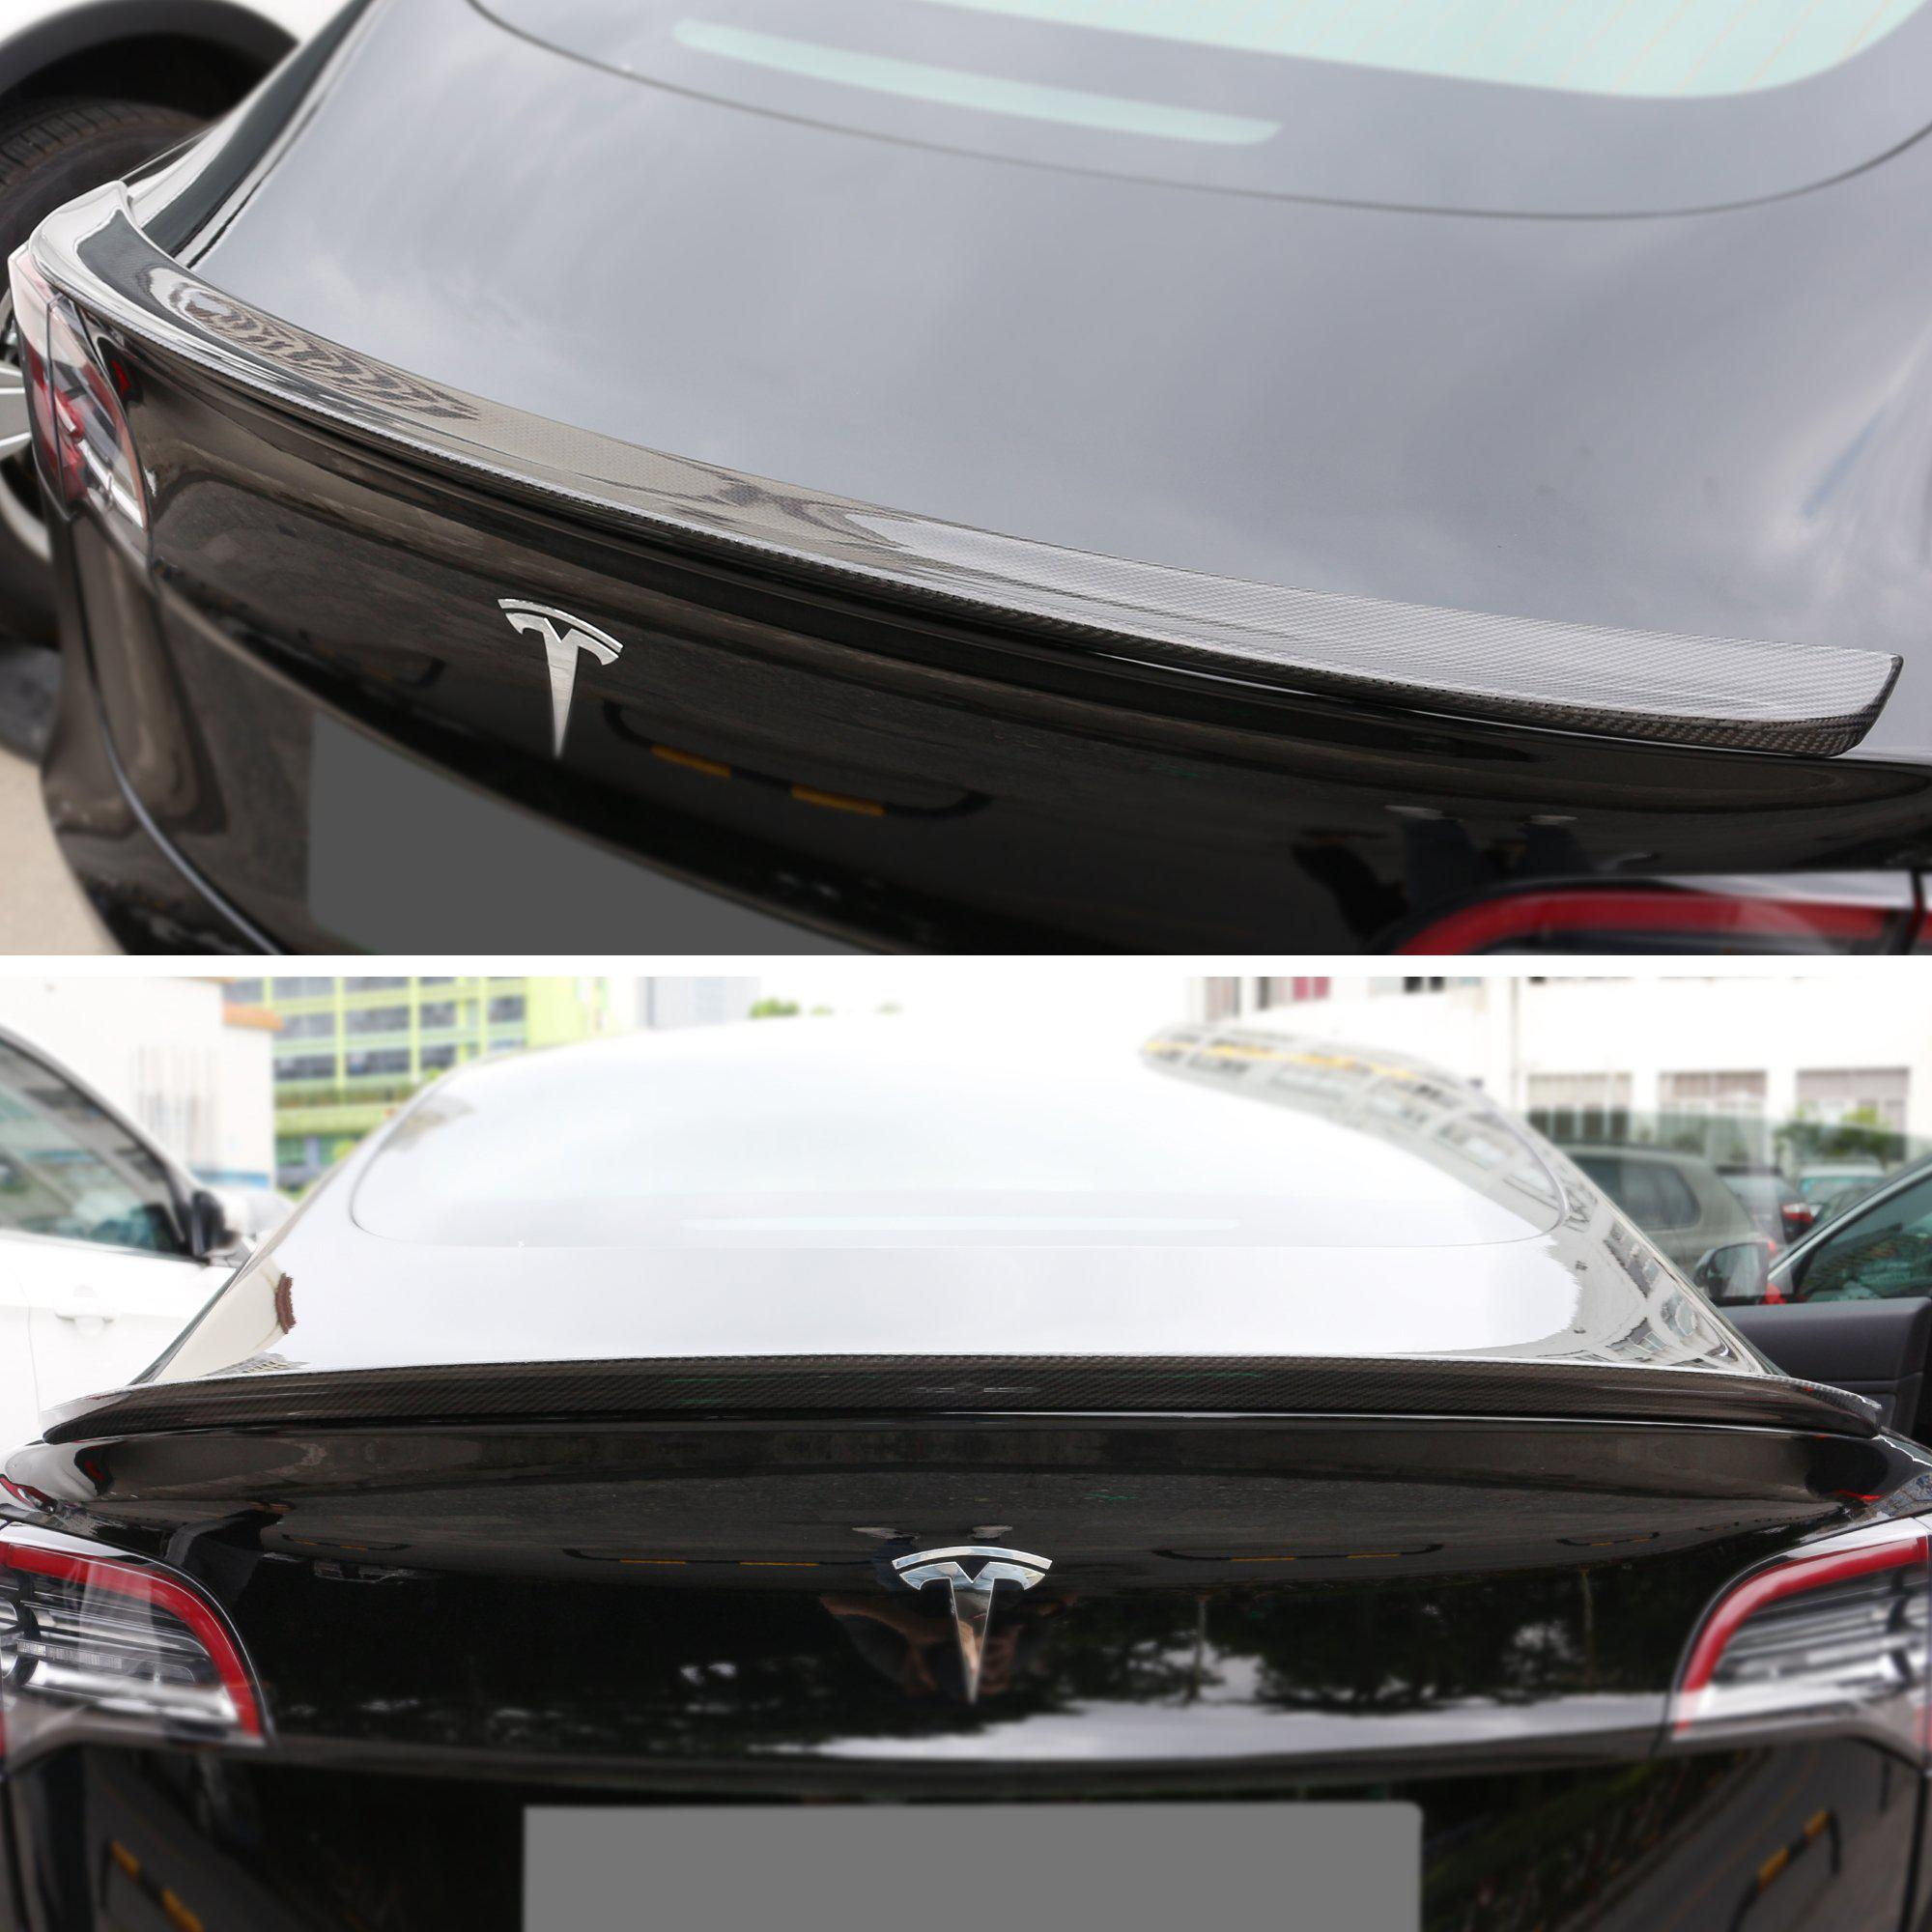 Tesla Model 3 Carbon Fiber Spoiler / Blade ($169 99 with 23% off